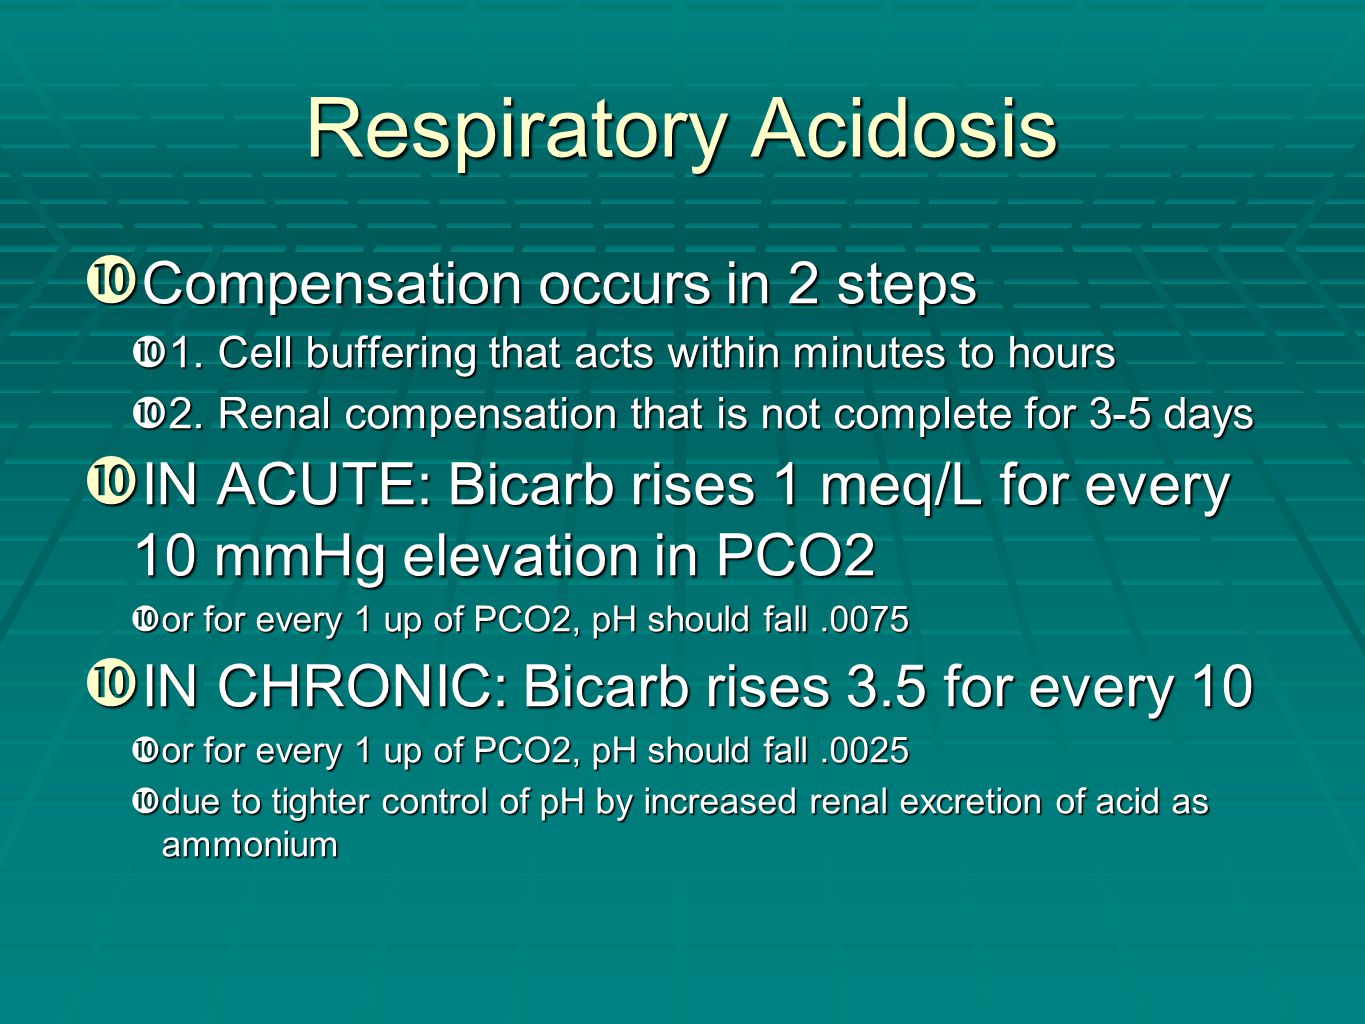 Respiratory Acidosis Compensation occurs in 2 steps